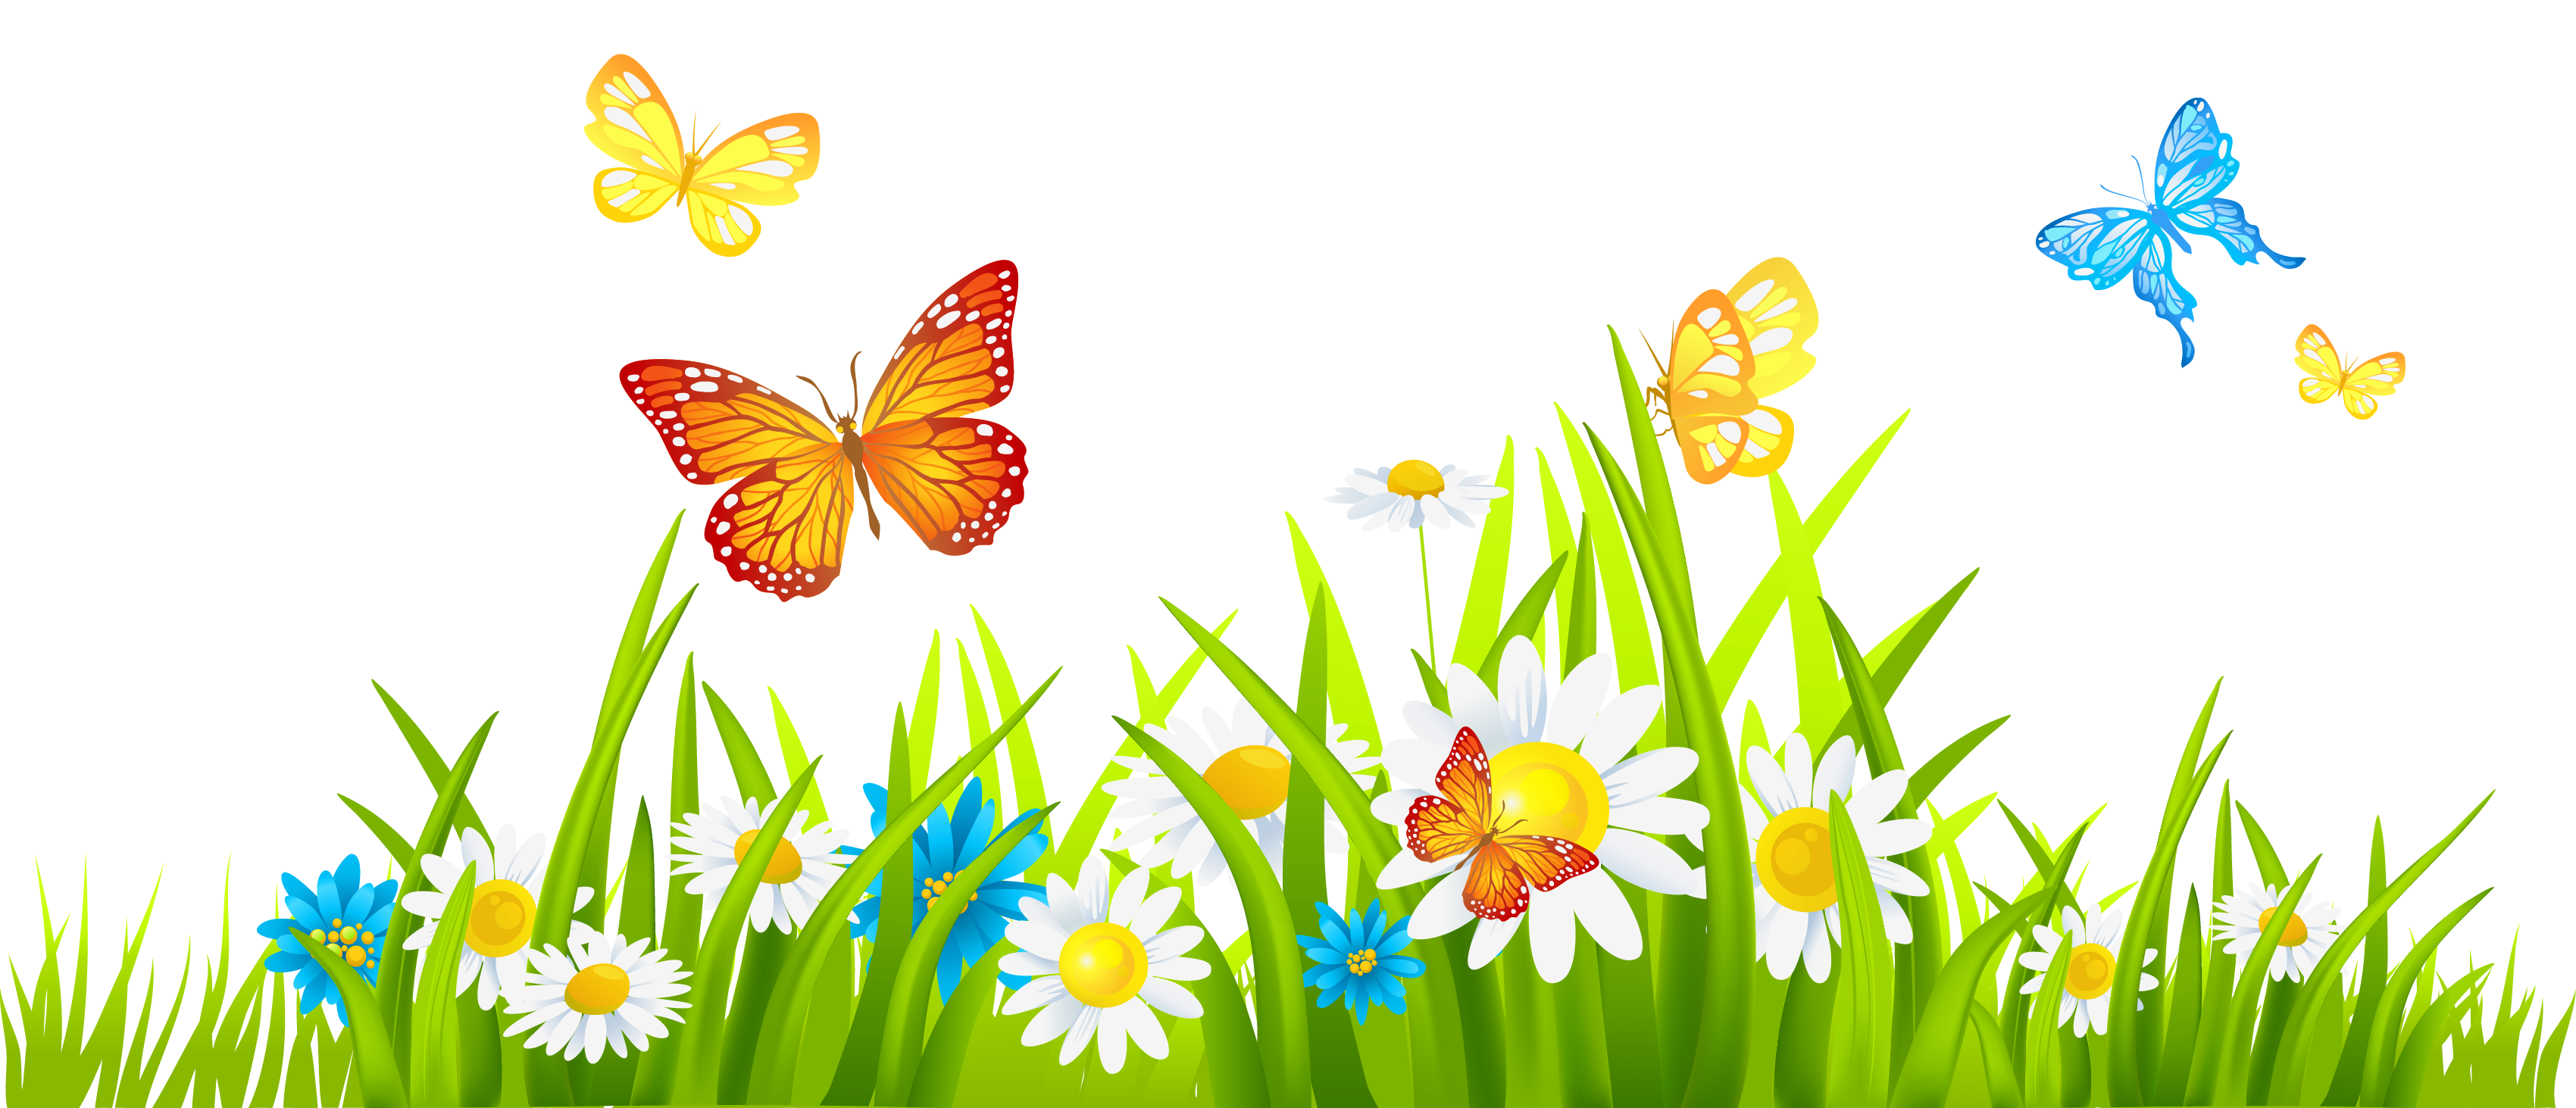 Flower cartoon png. Grass ground with flowers